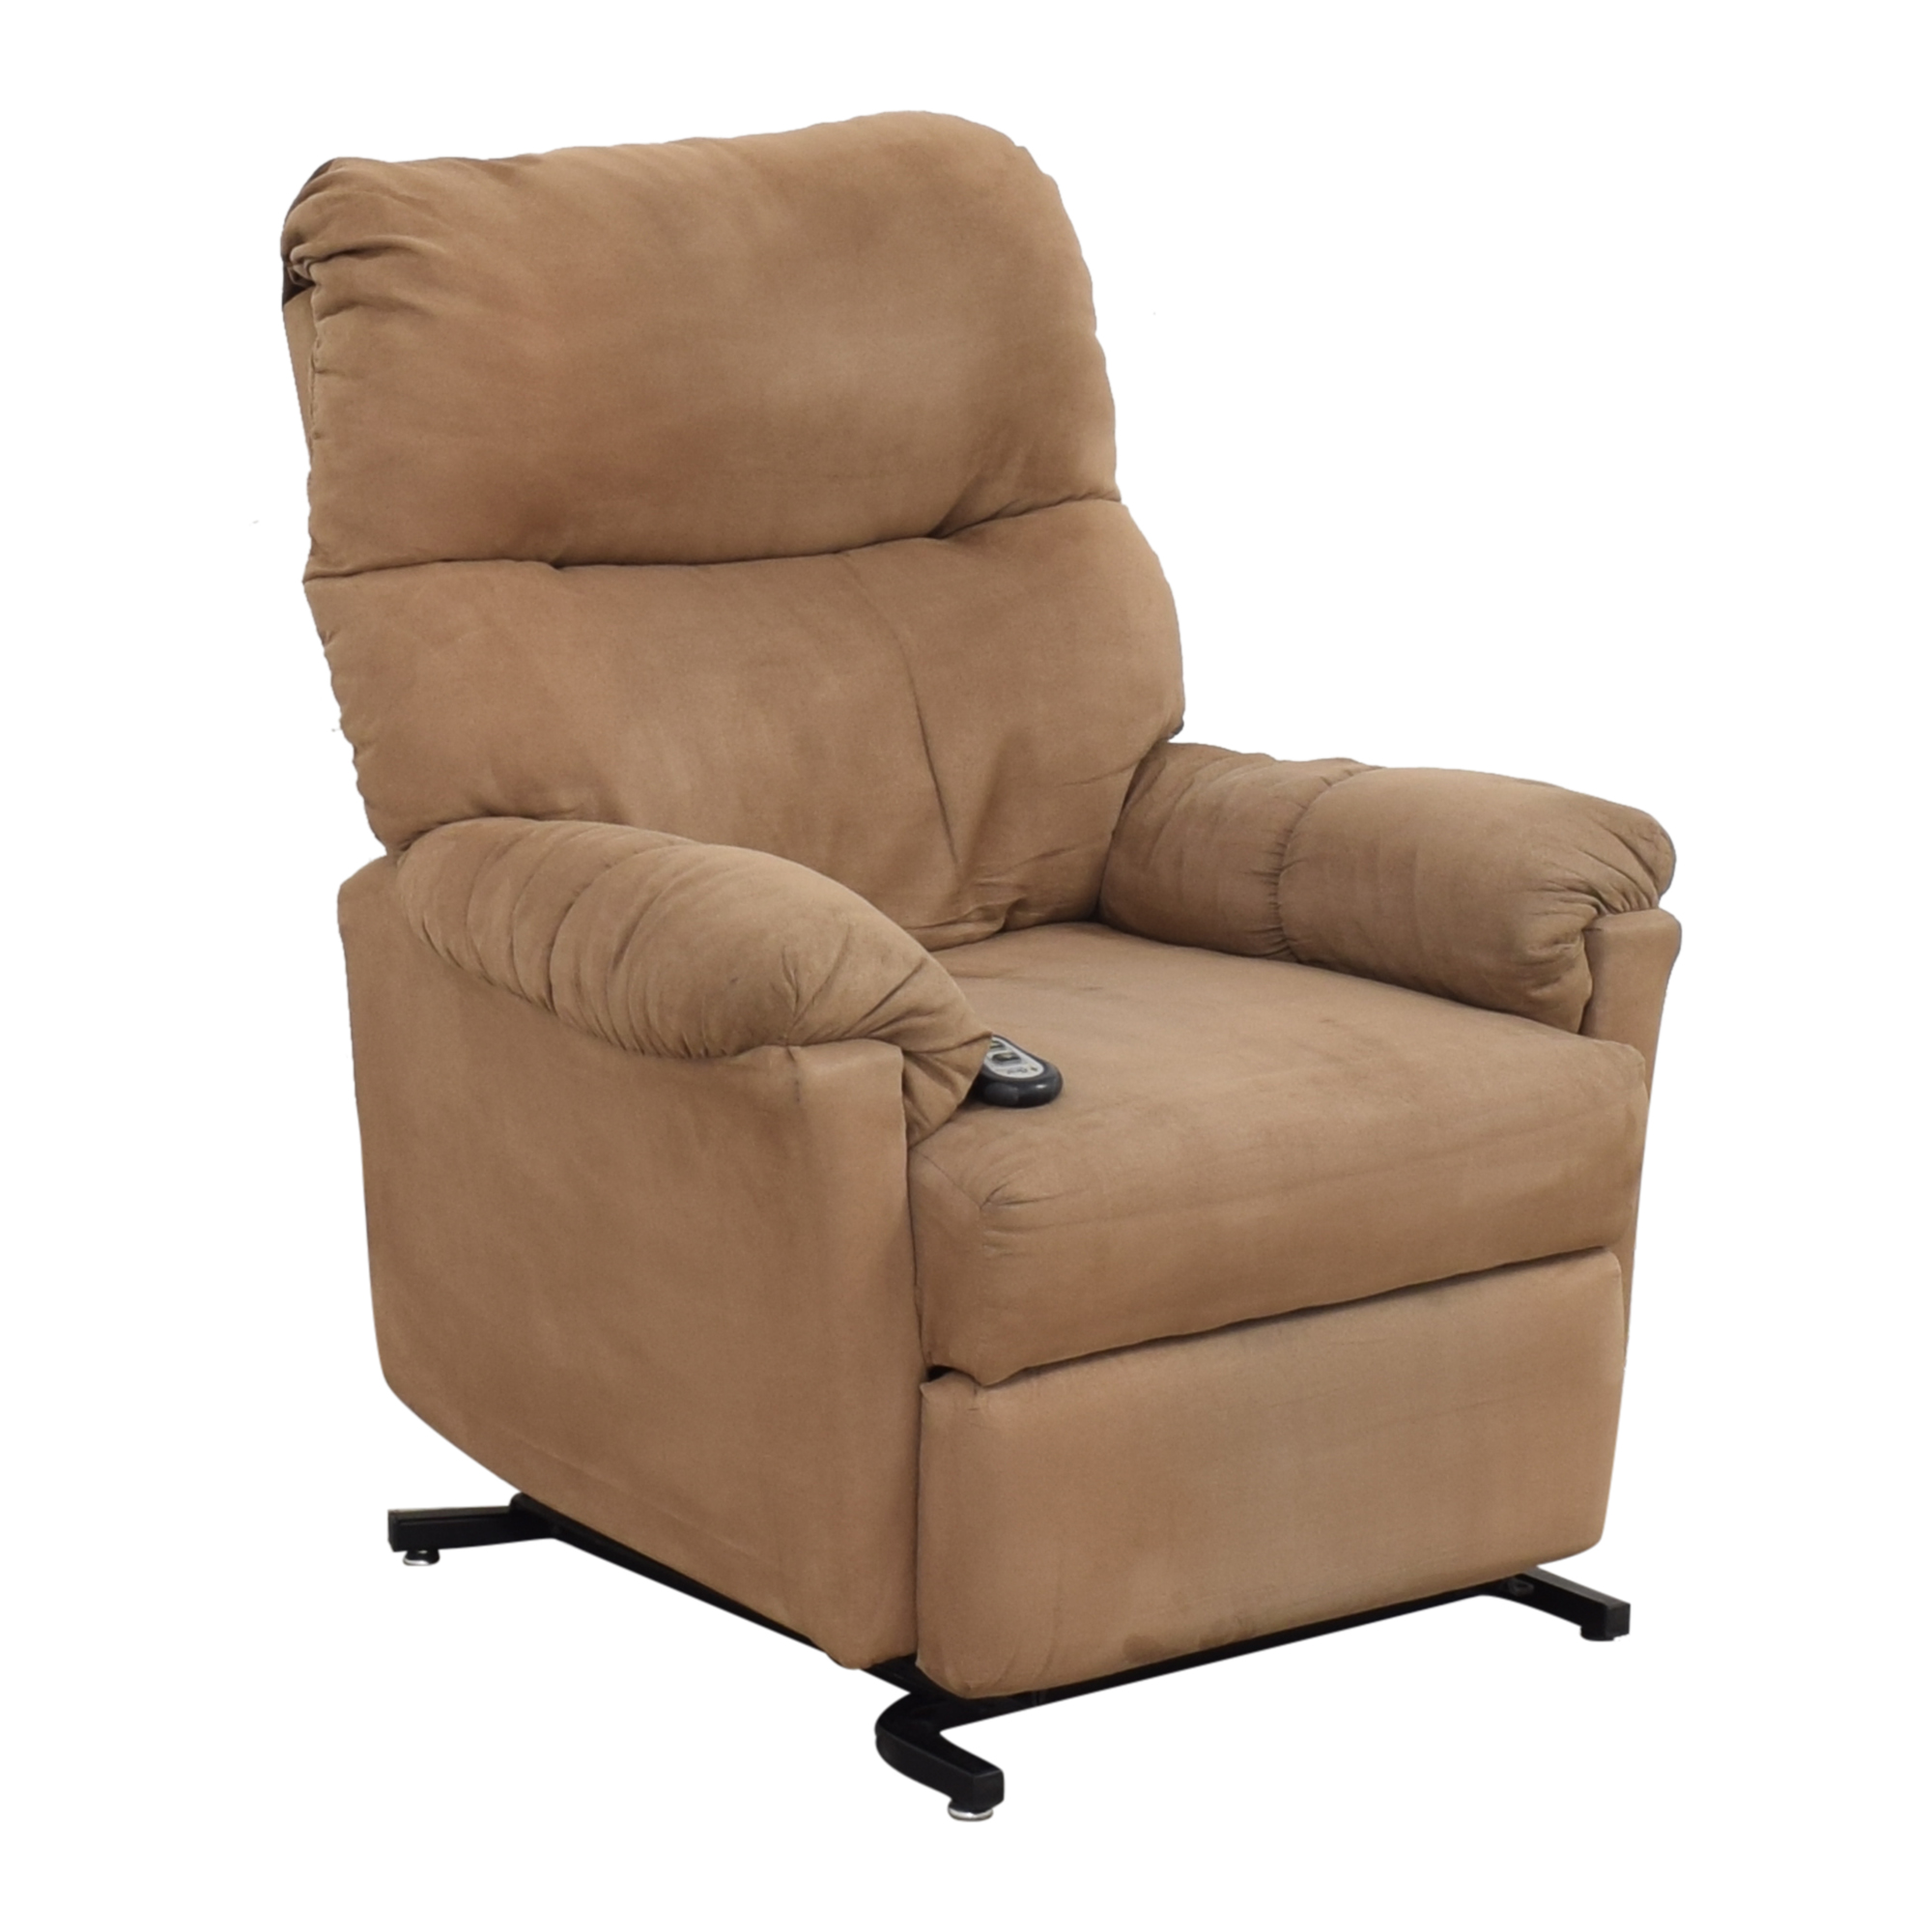 buy Best Chairs Best Chairs Recliner online